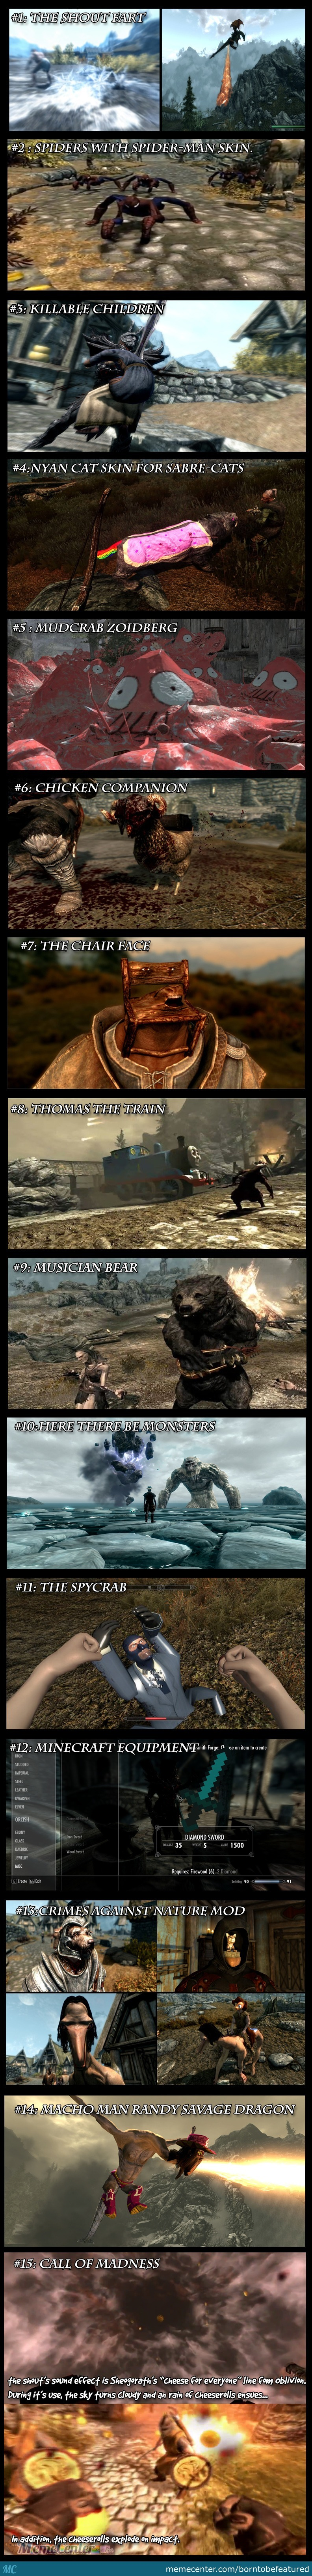 Some Really Crazy-Over The Top Skyrim Mods  by borntobefeatured